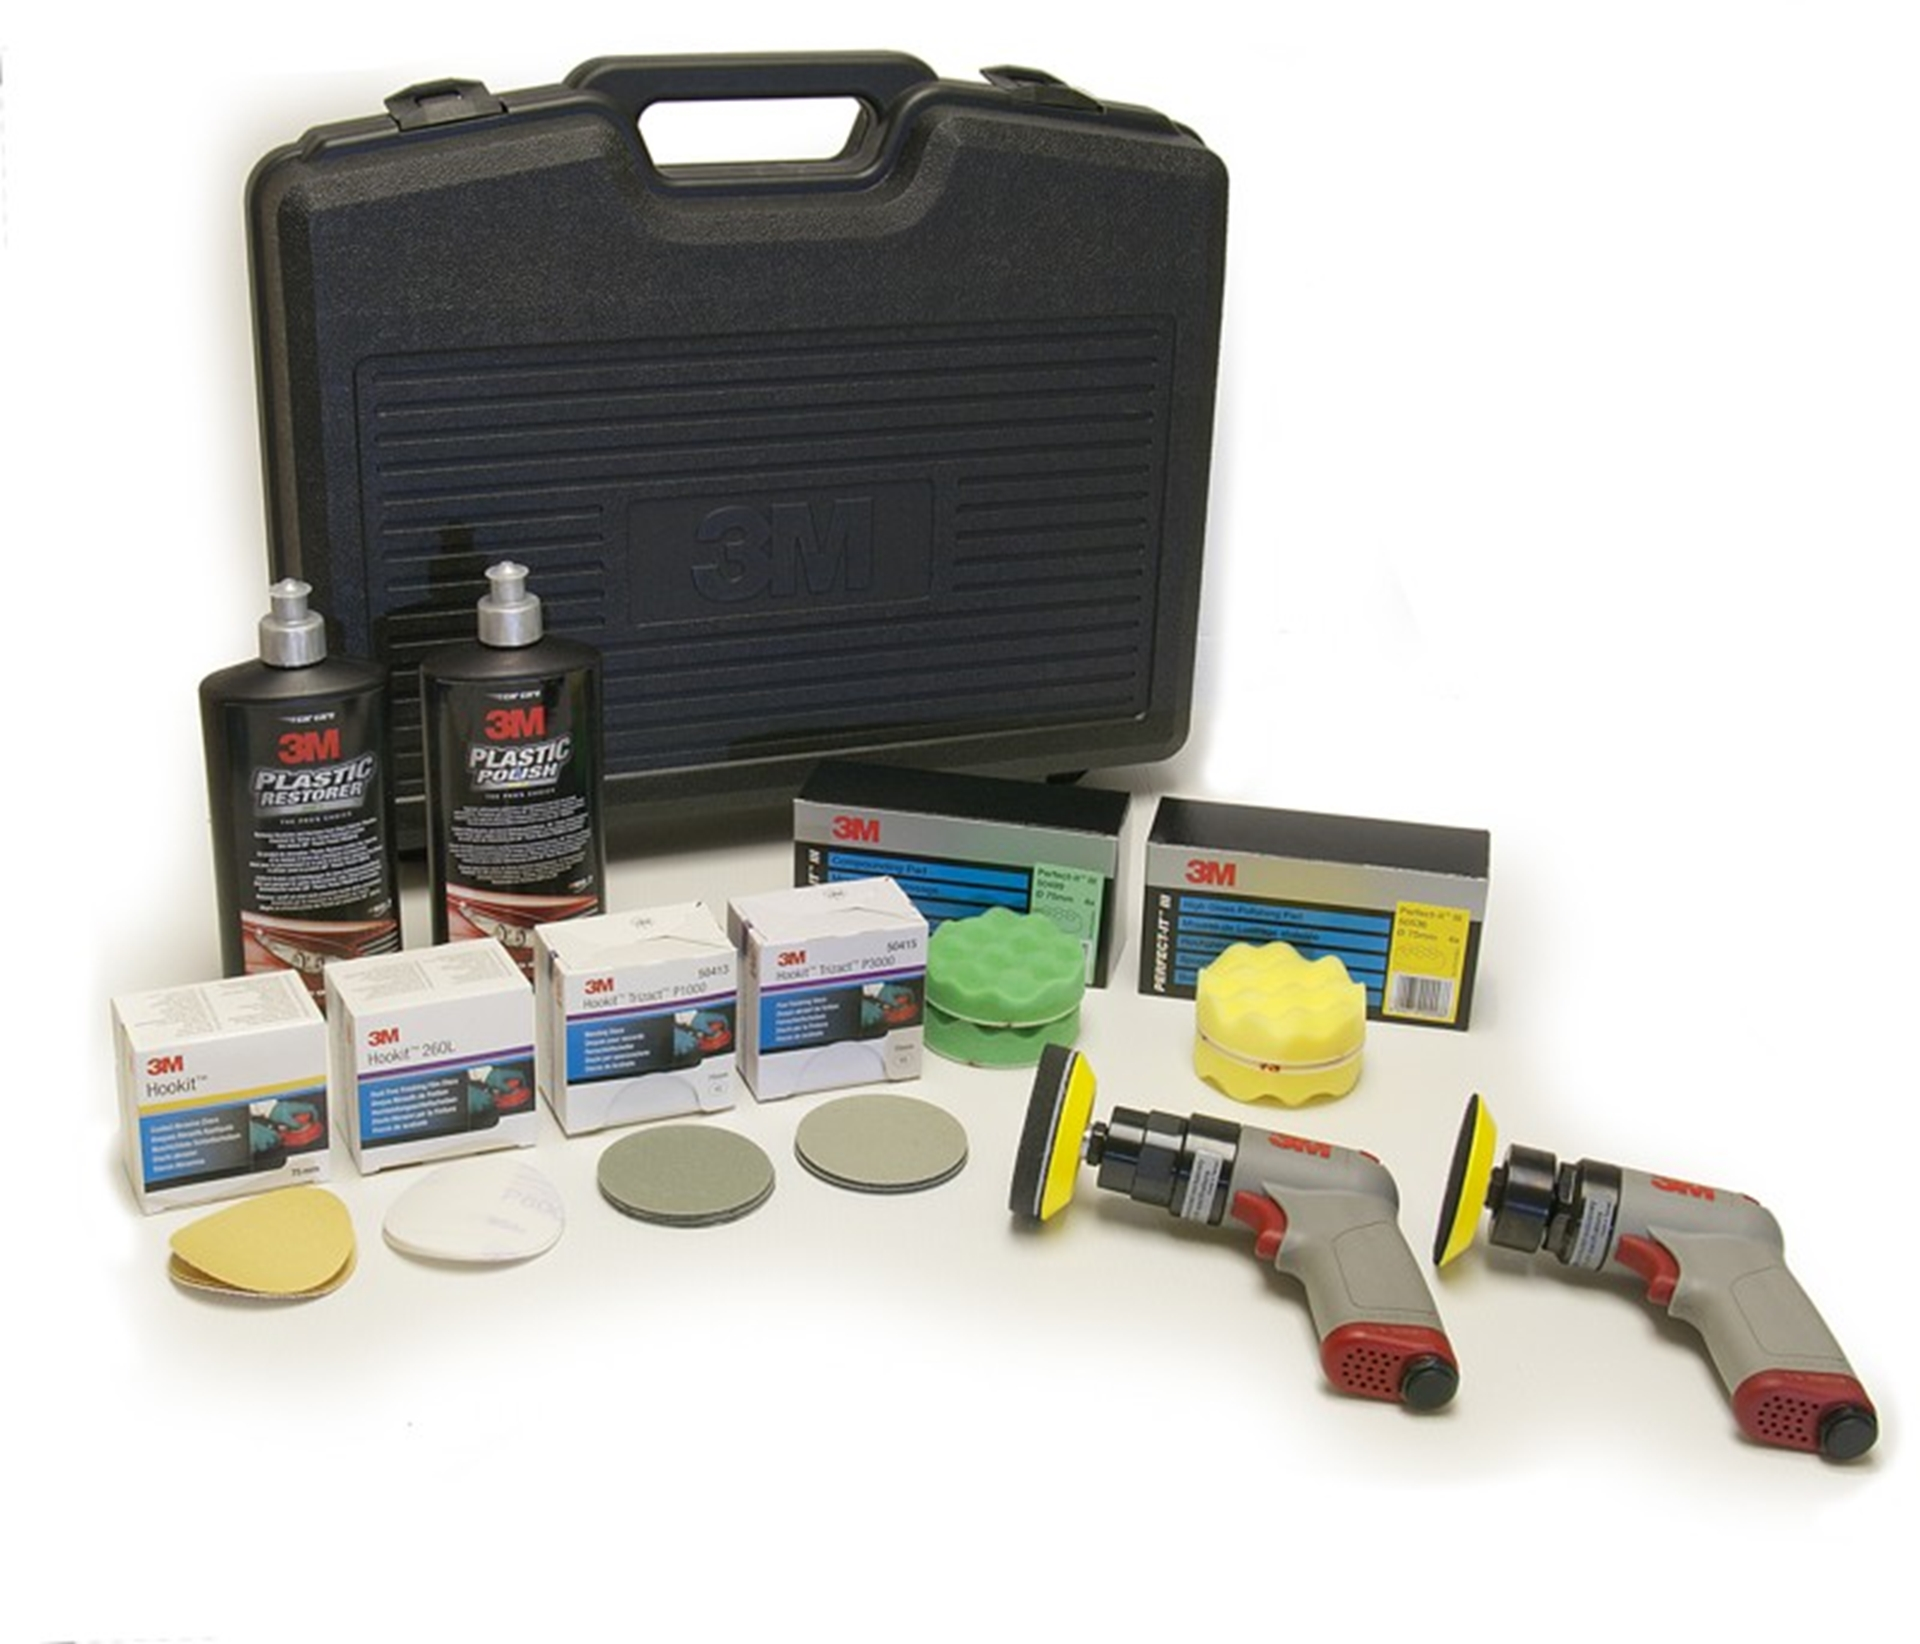 3M Headlamp Repair Kit